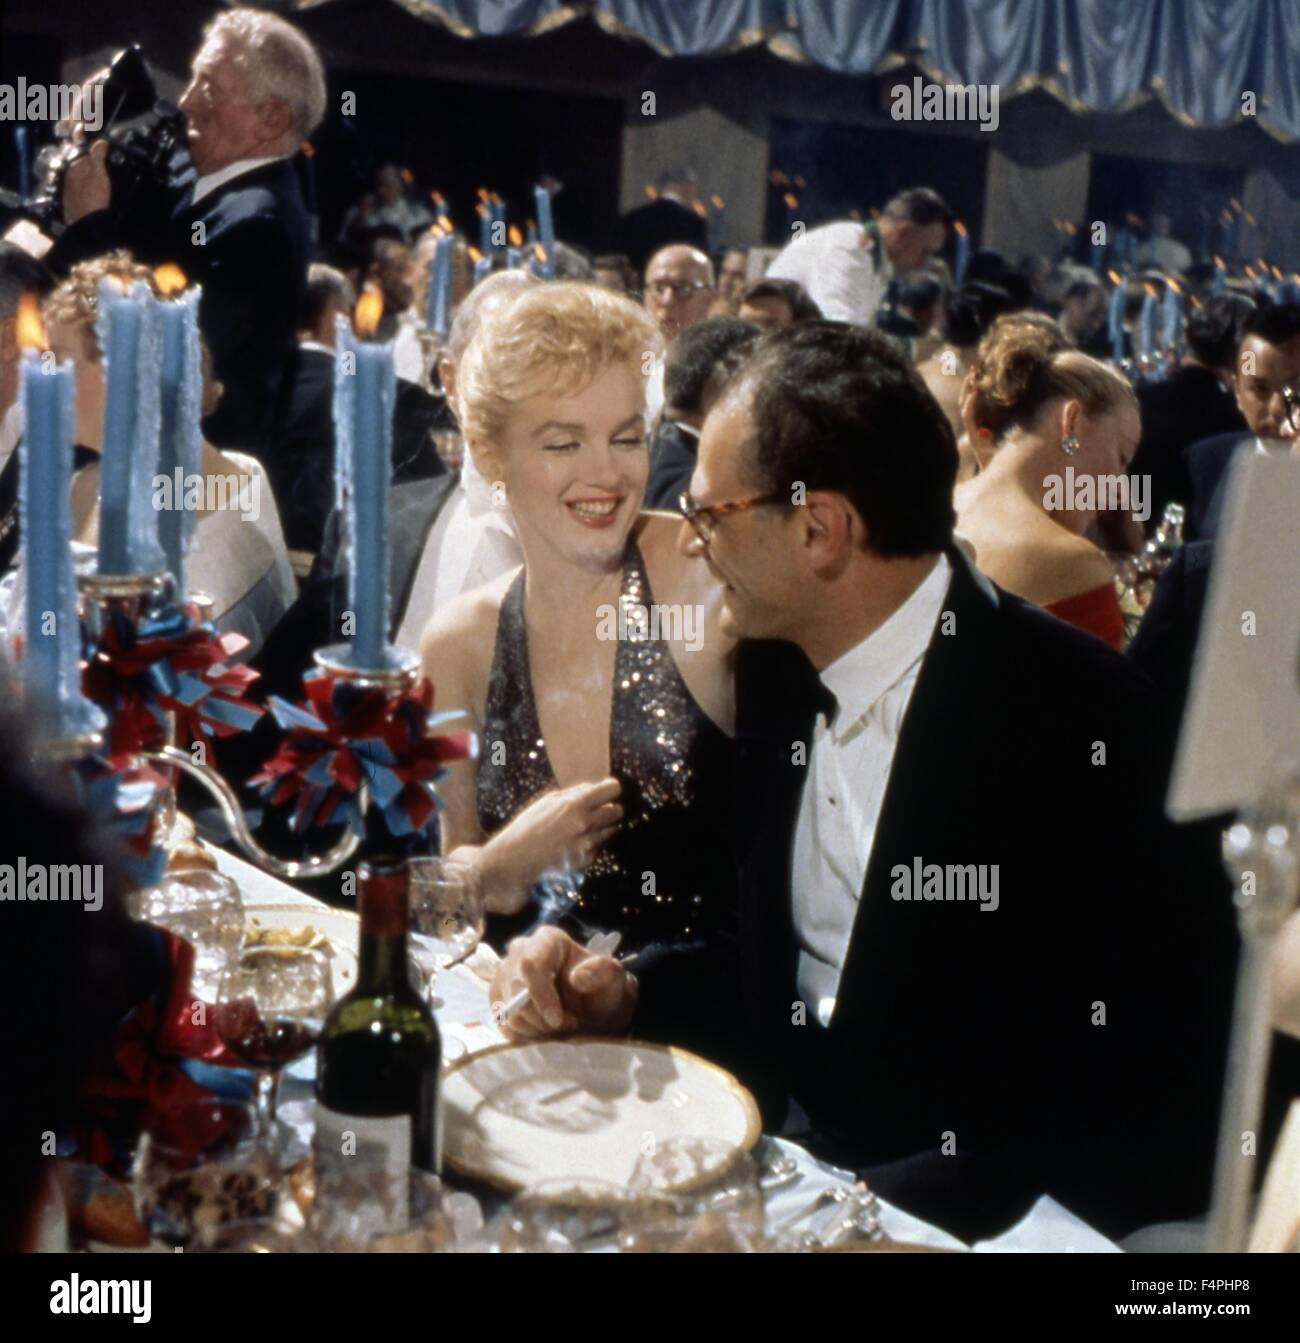 Marilyn Monroe with Arthur Miller at Waldorf Astoria, New-York, 11/04/1957 - Stock Image